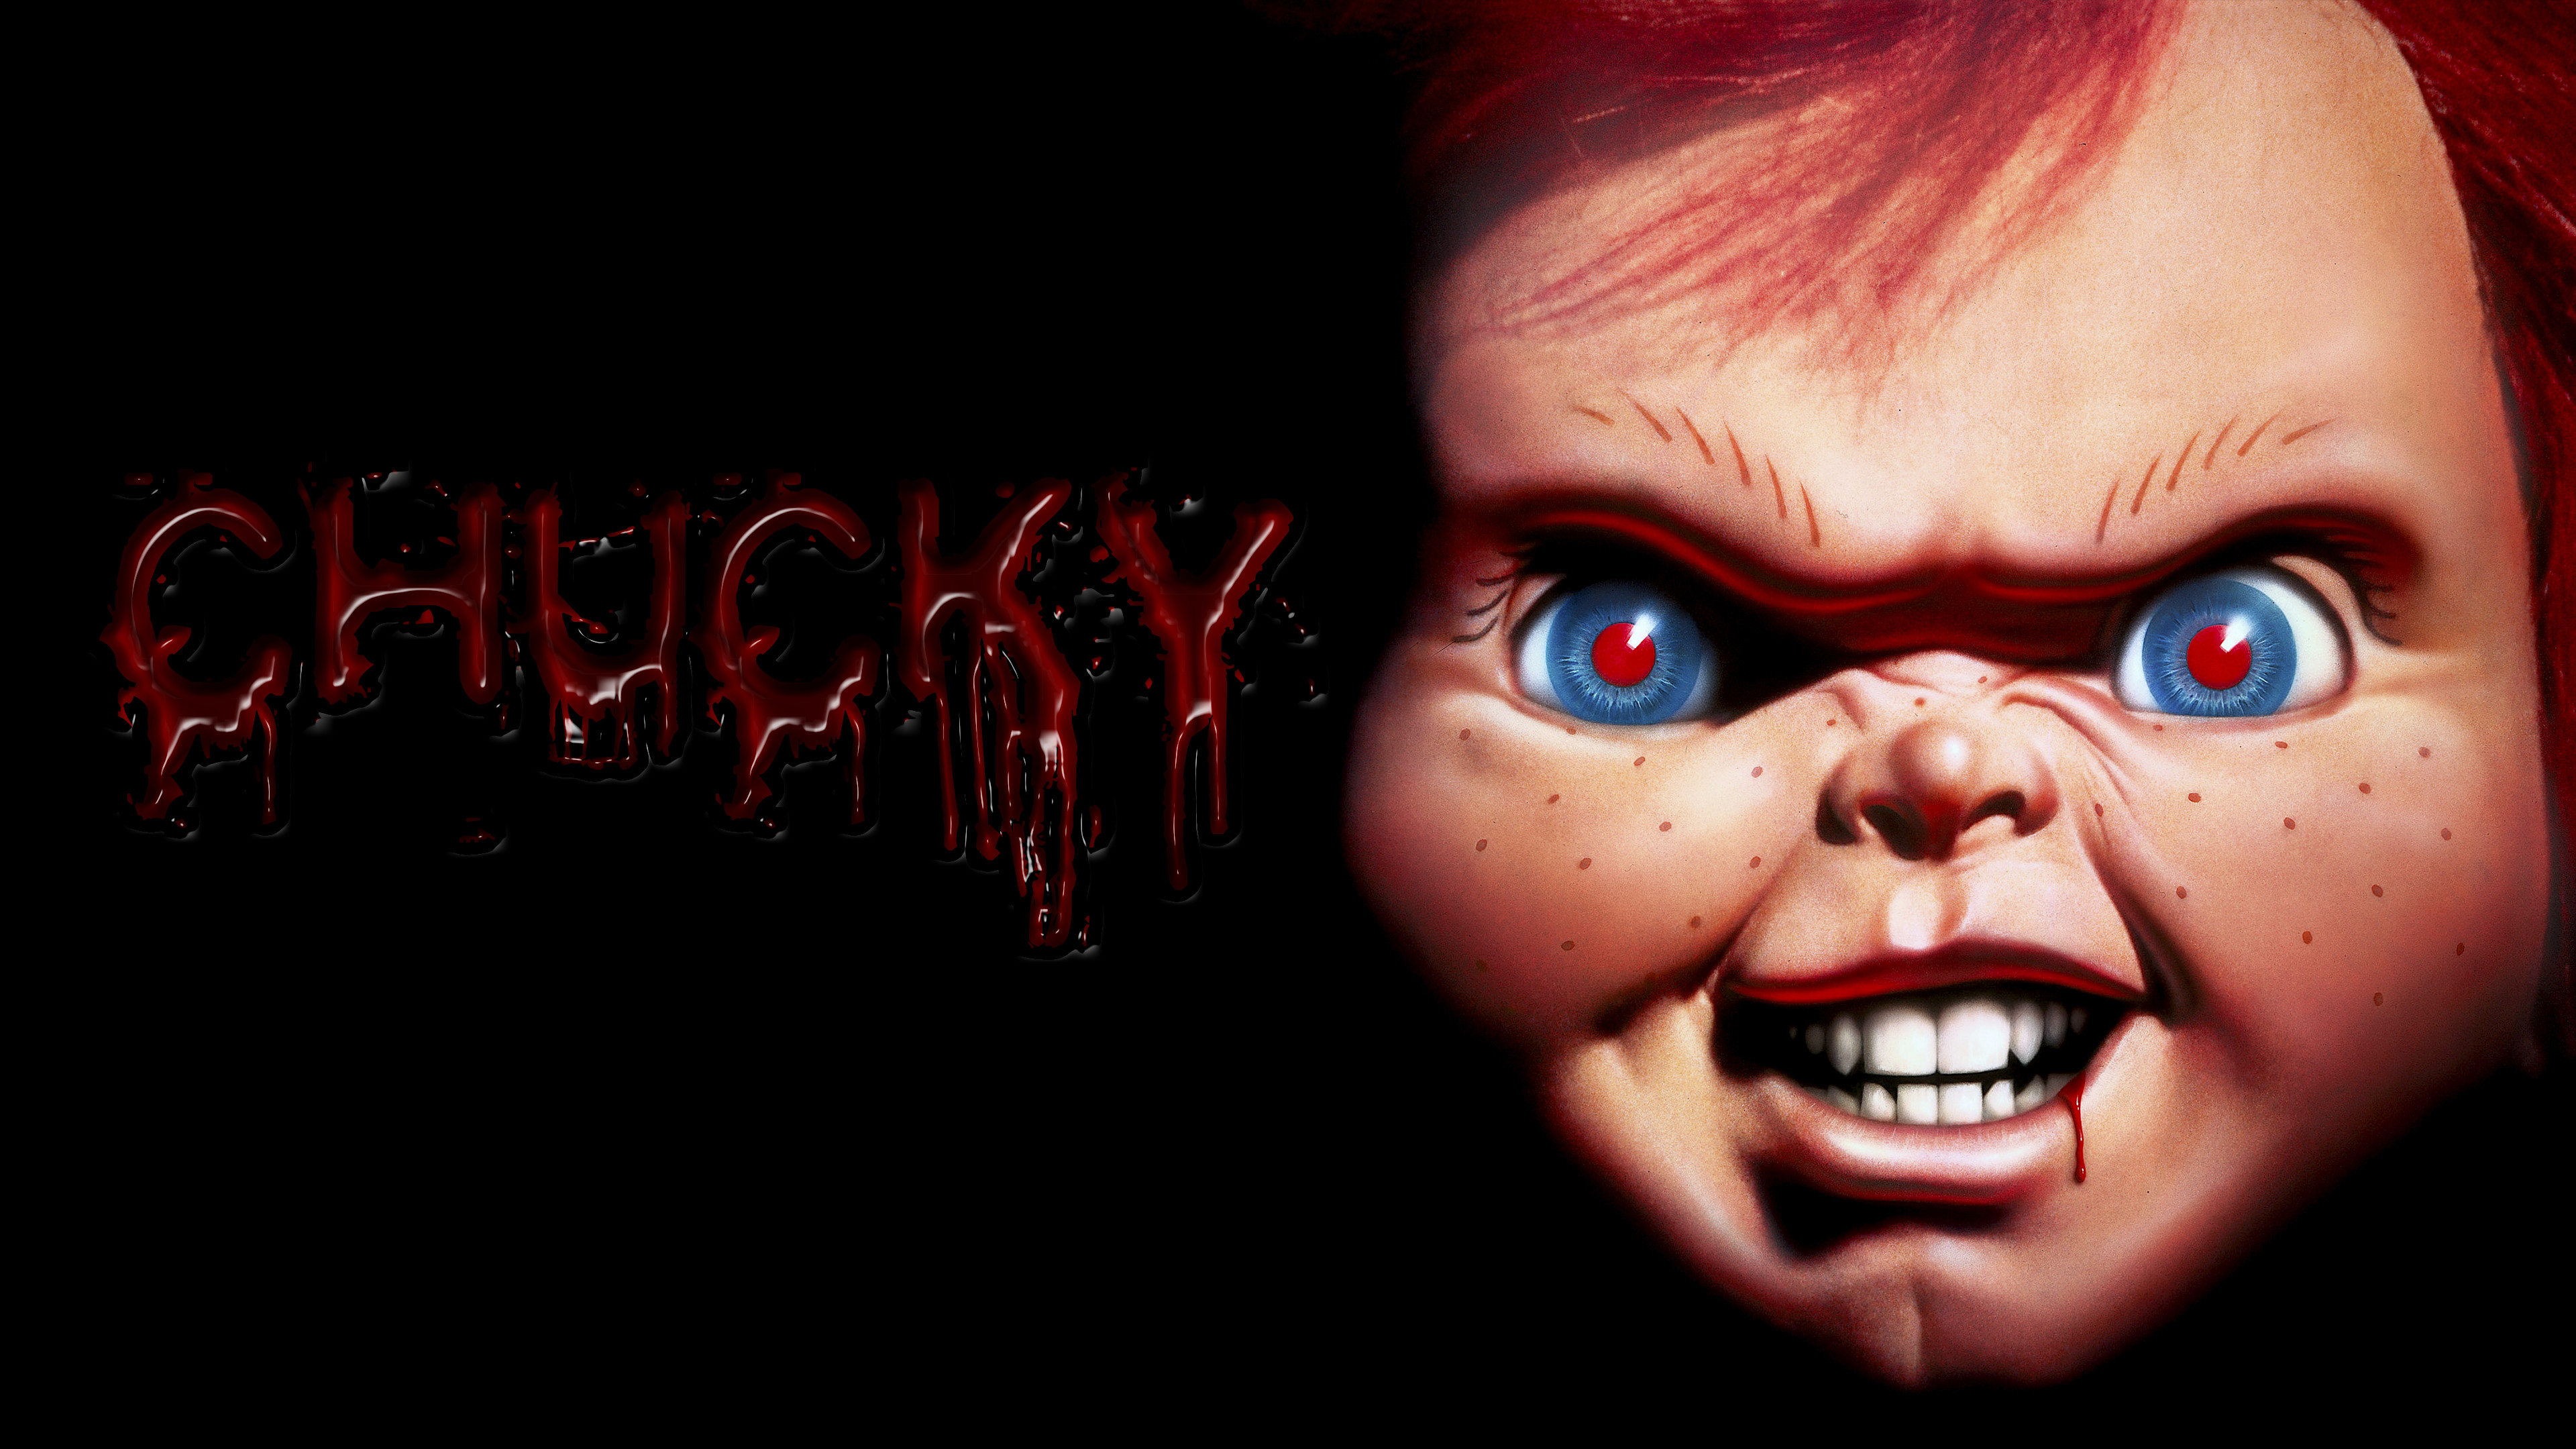 Chucky wallpaper chucky wallpaper 4k by francisco g9 voltagebd Choice Image